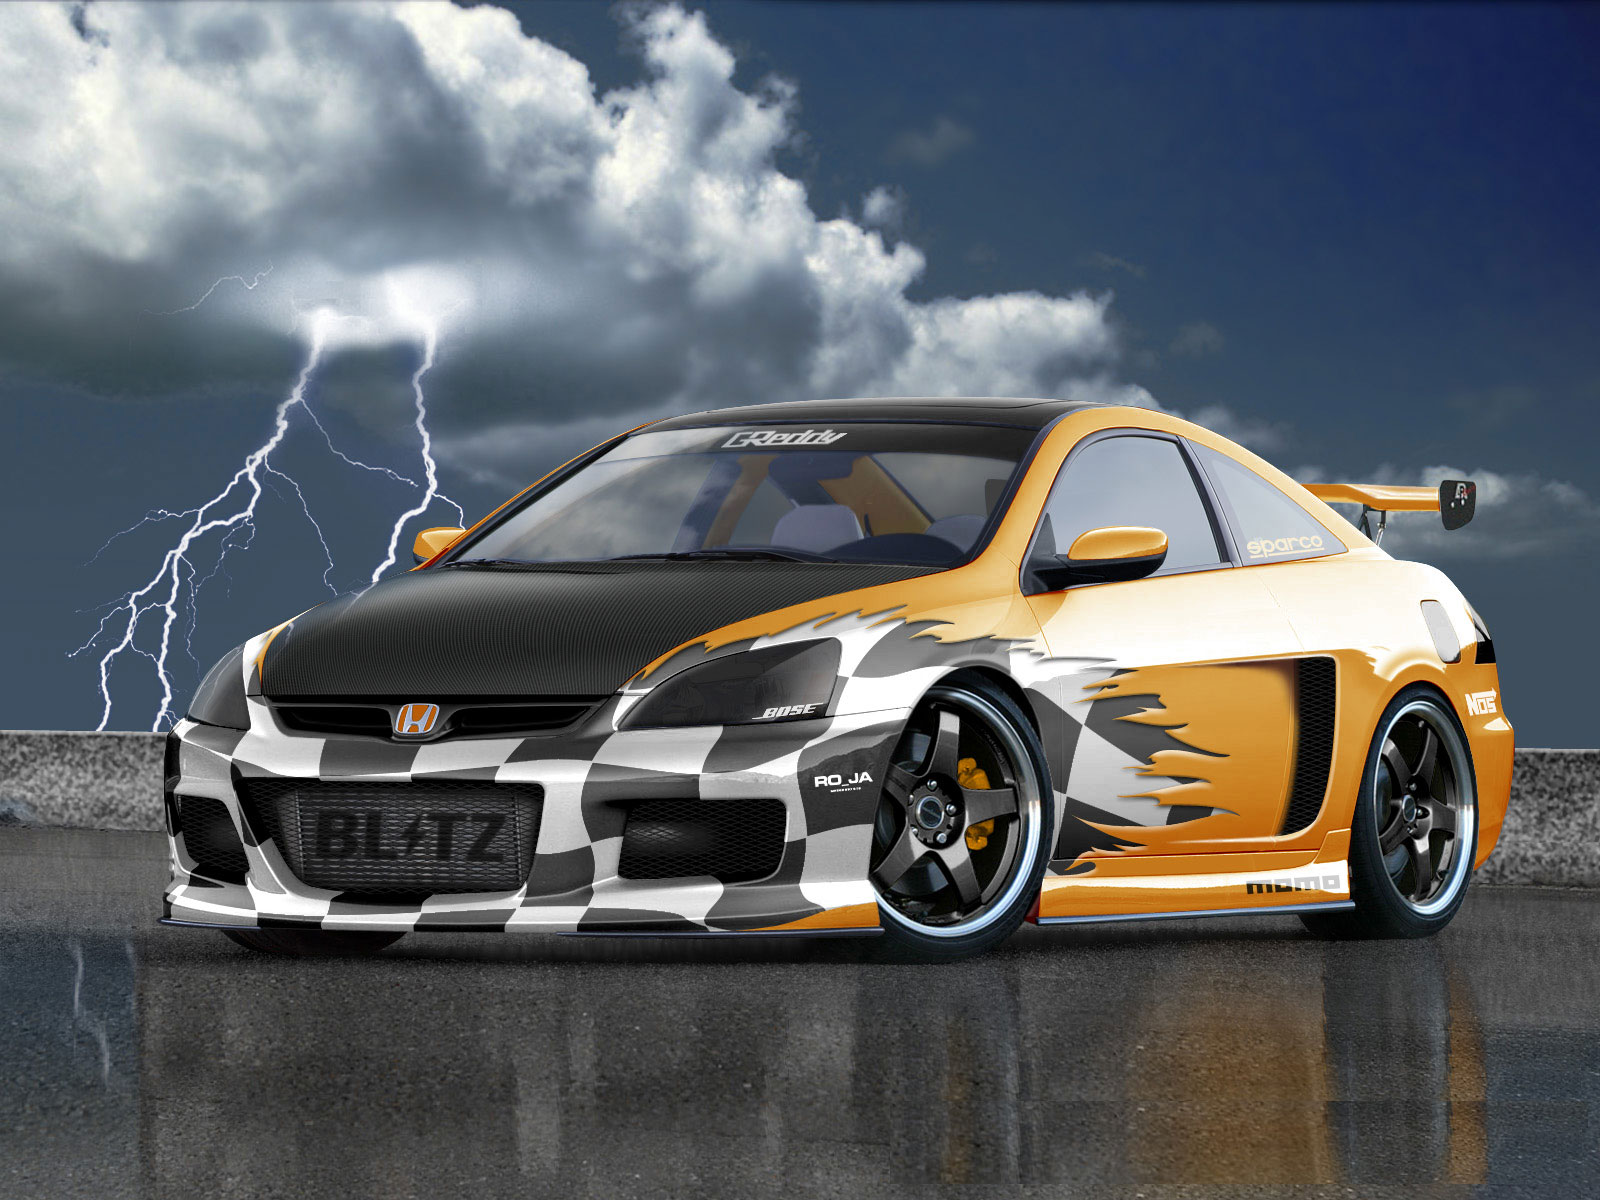 HD-car Wallpapers is the no:1 source of Car wallpapers